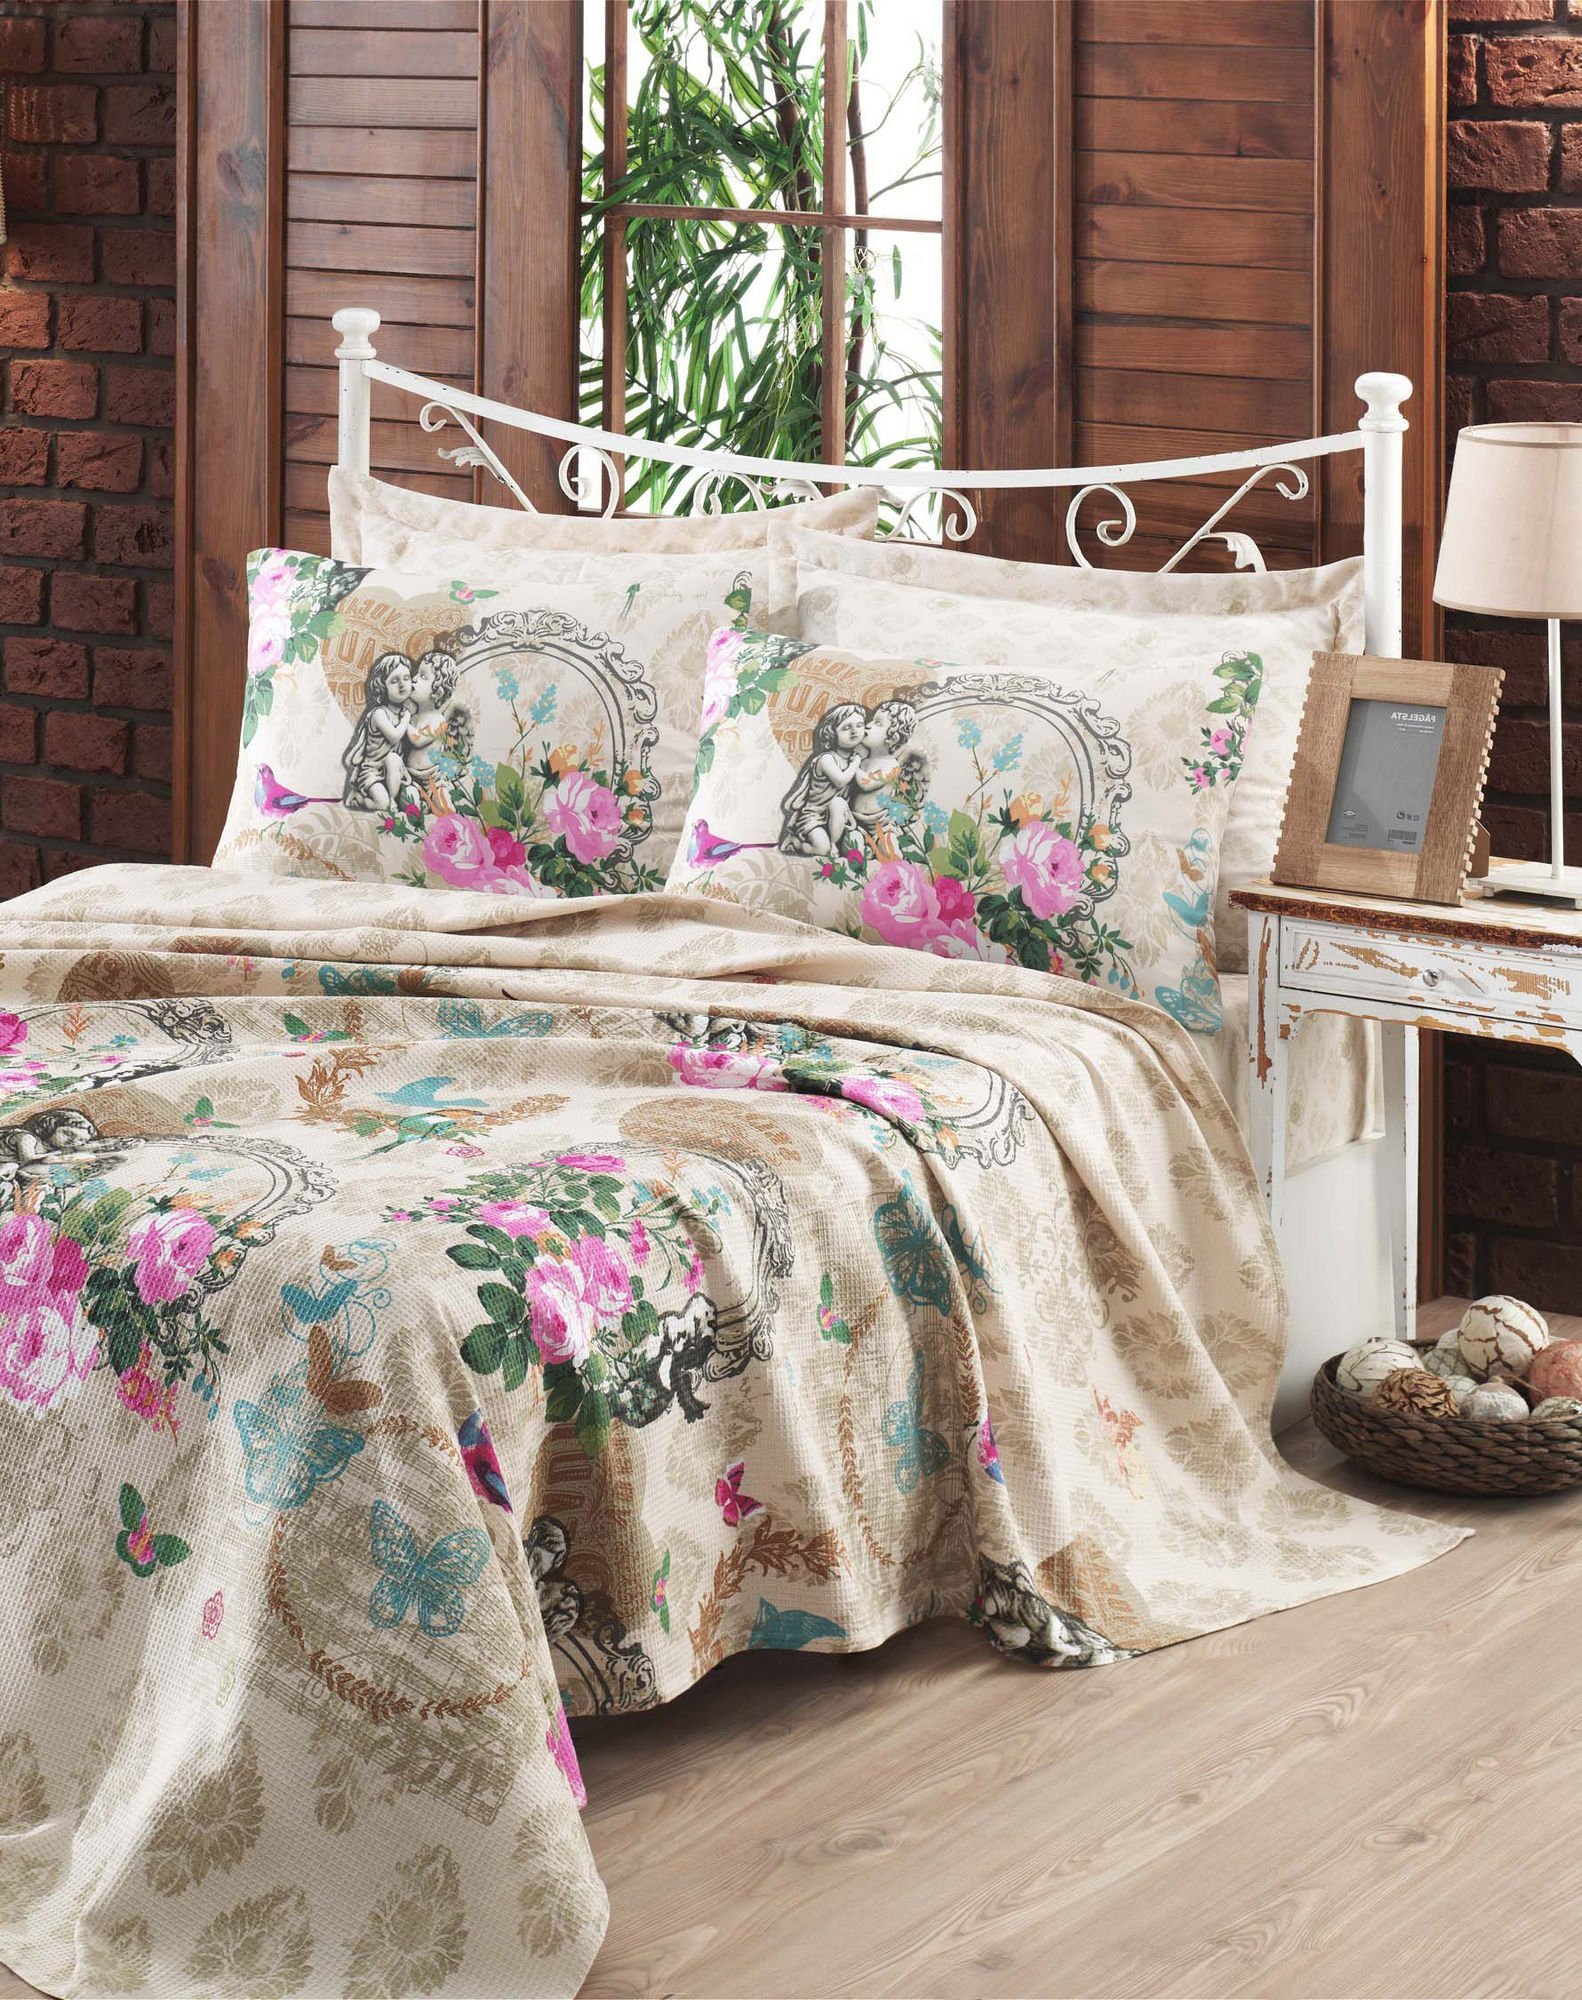 LaModaHome Flora Coverlet, 100% Cotton - Colorful Flowers and Butterfly, Hugging Baby Statue - Size (63'' x 92.5'') for Twin Bed